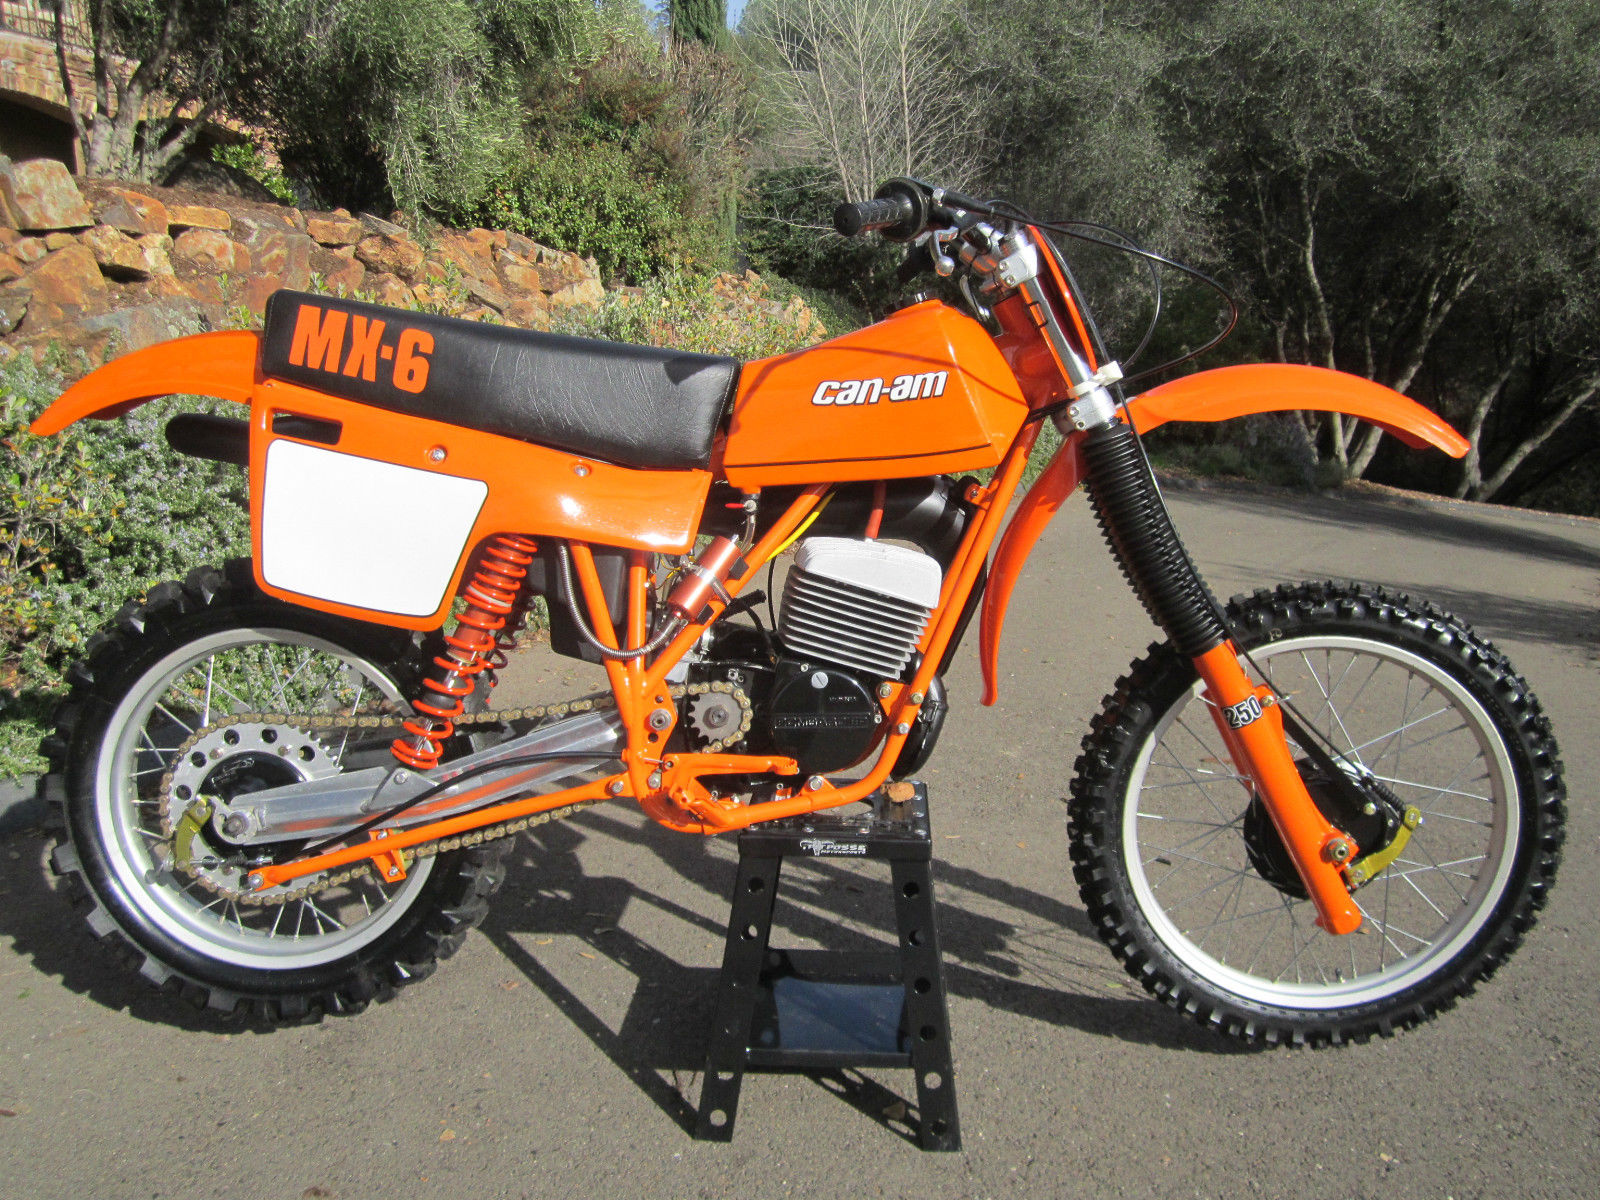 Restored Can Am Mx6 250b 1981 Photographs At Classic